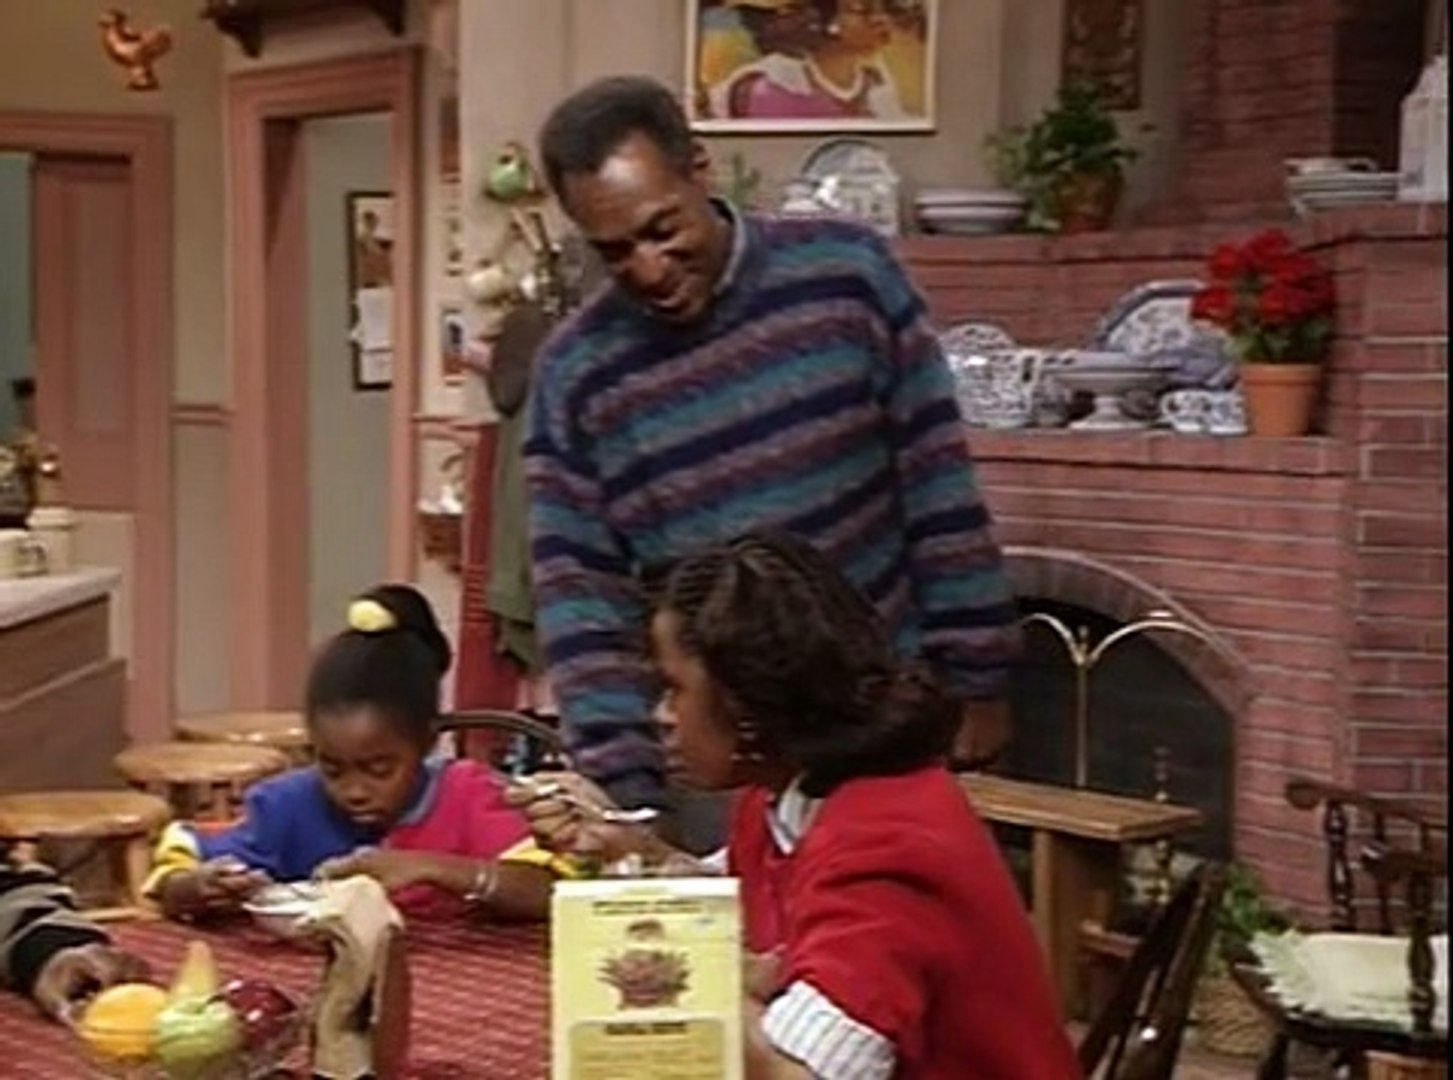 The cosby show parody